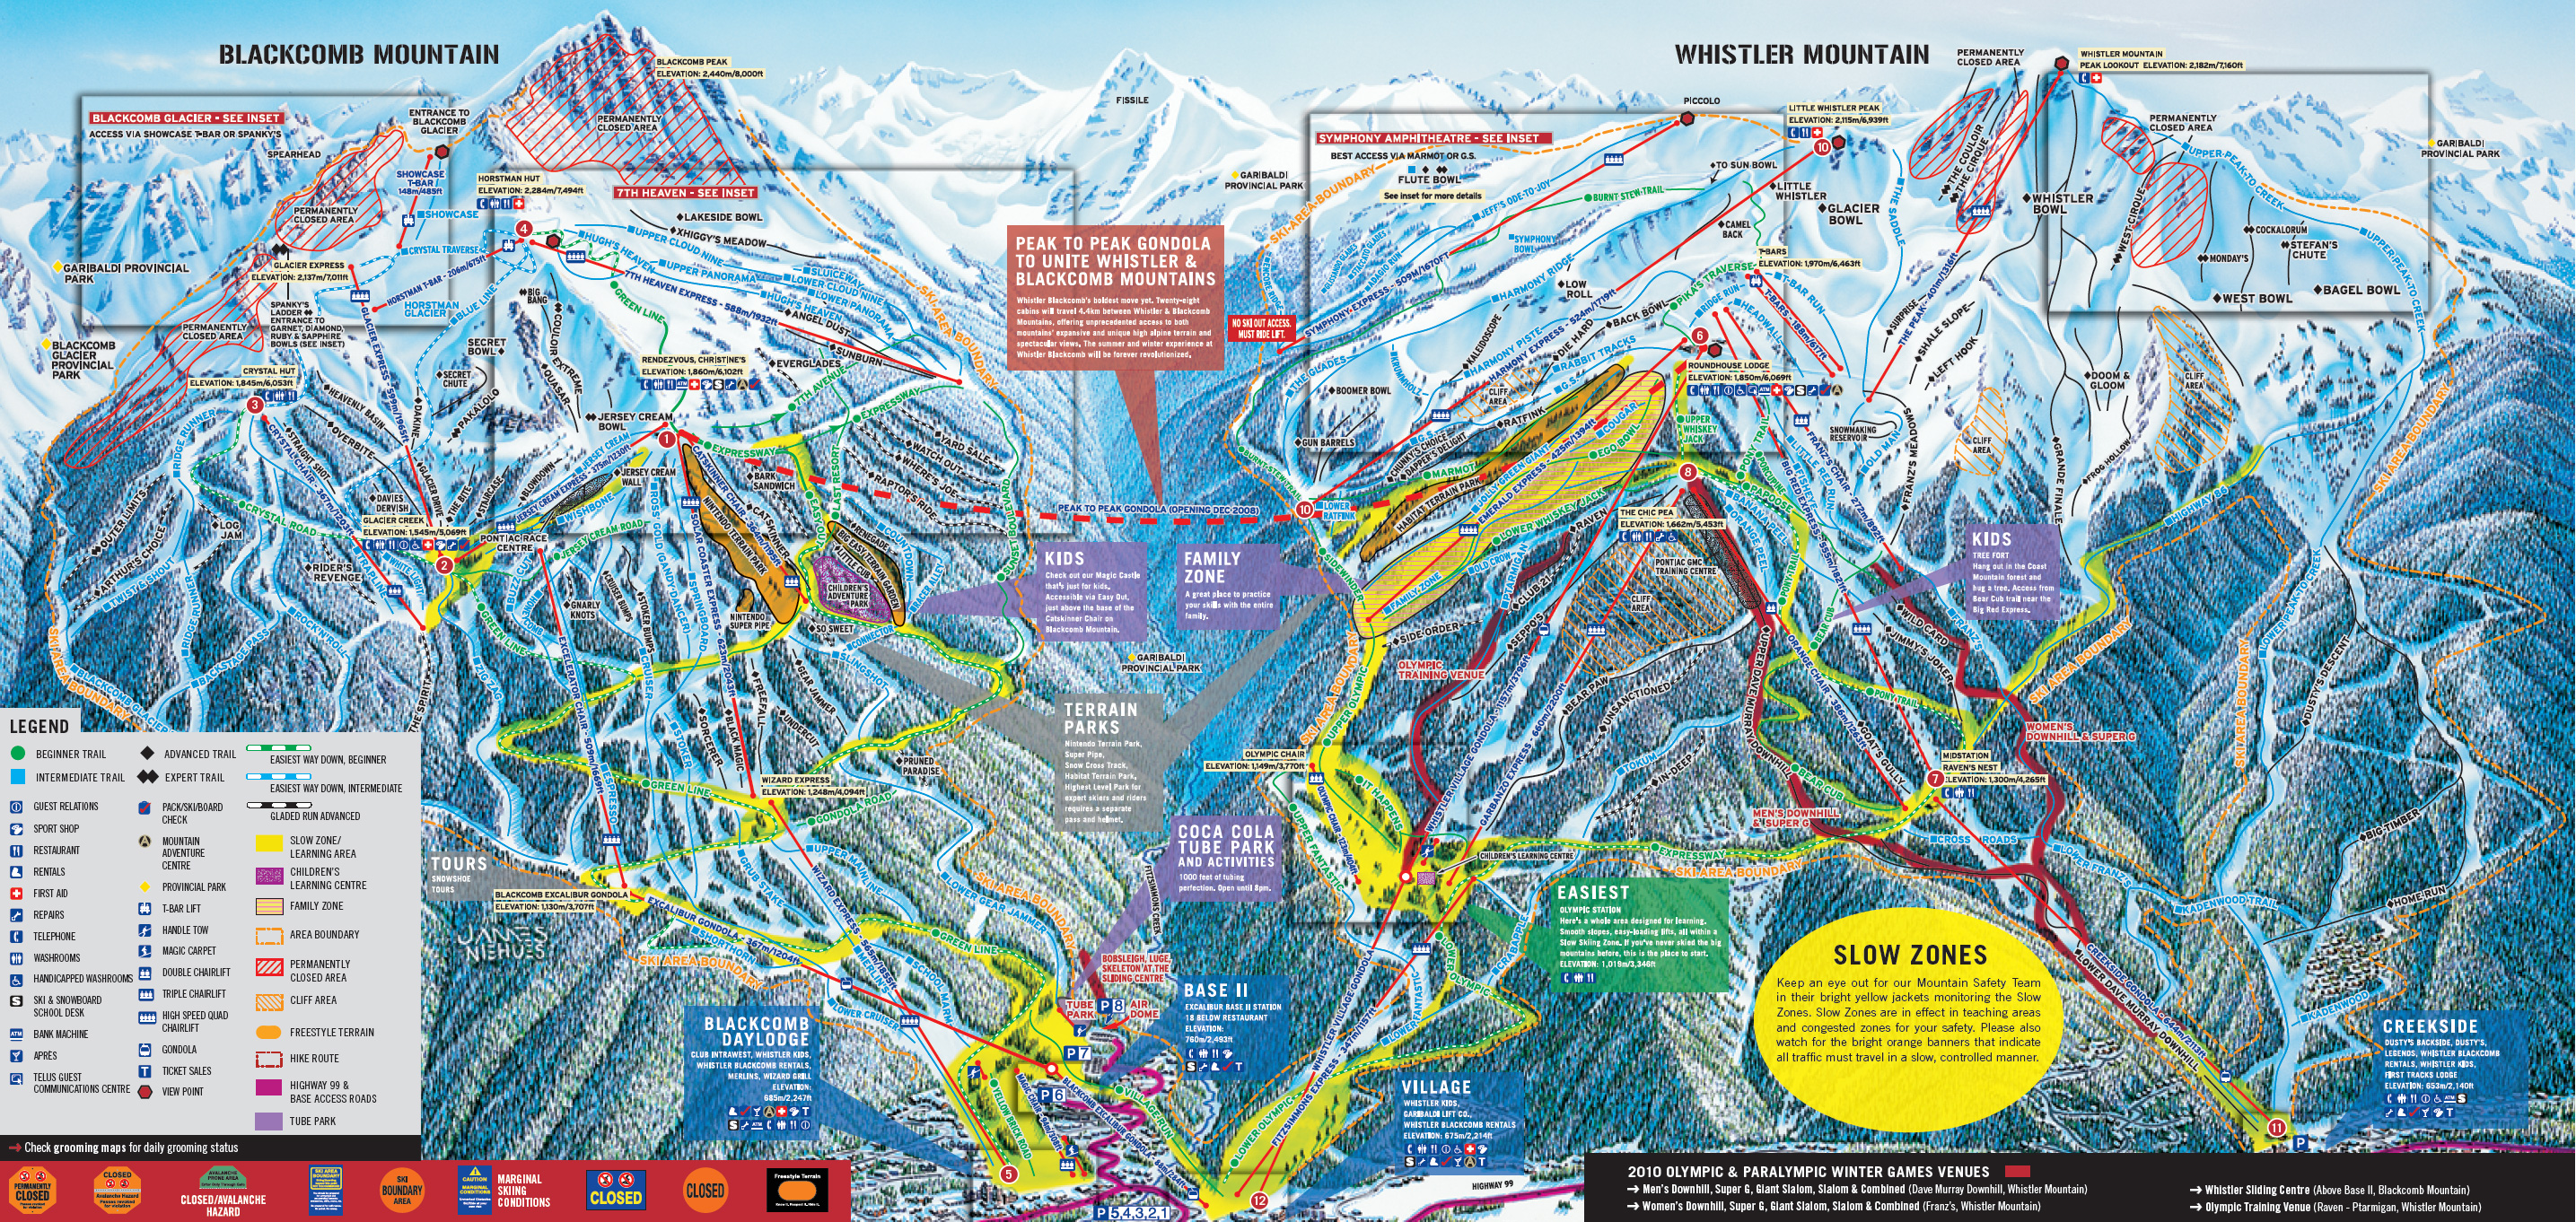 Whistler Blackcomb Ski Trail Map 2007 2008 Whistler BC Canada mappery